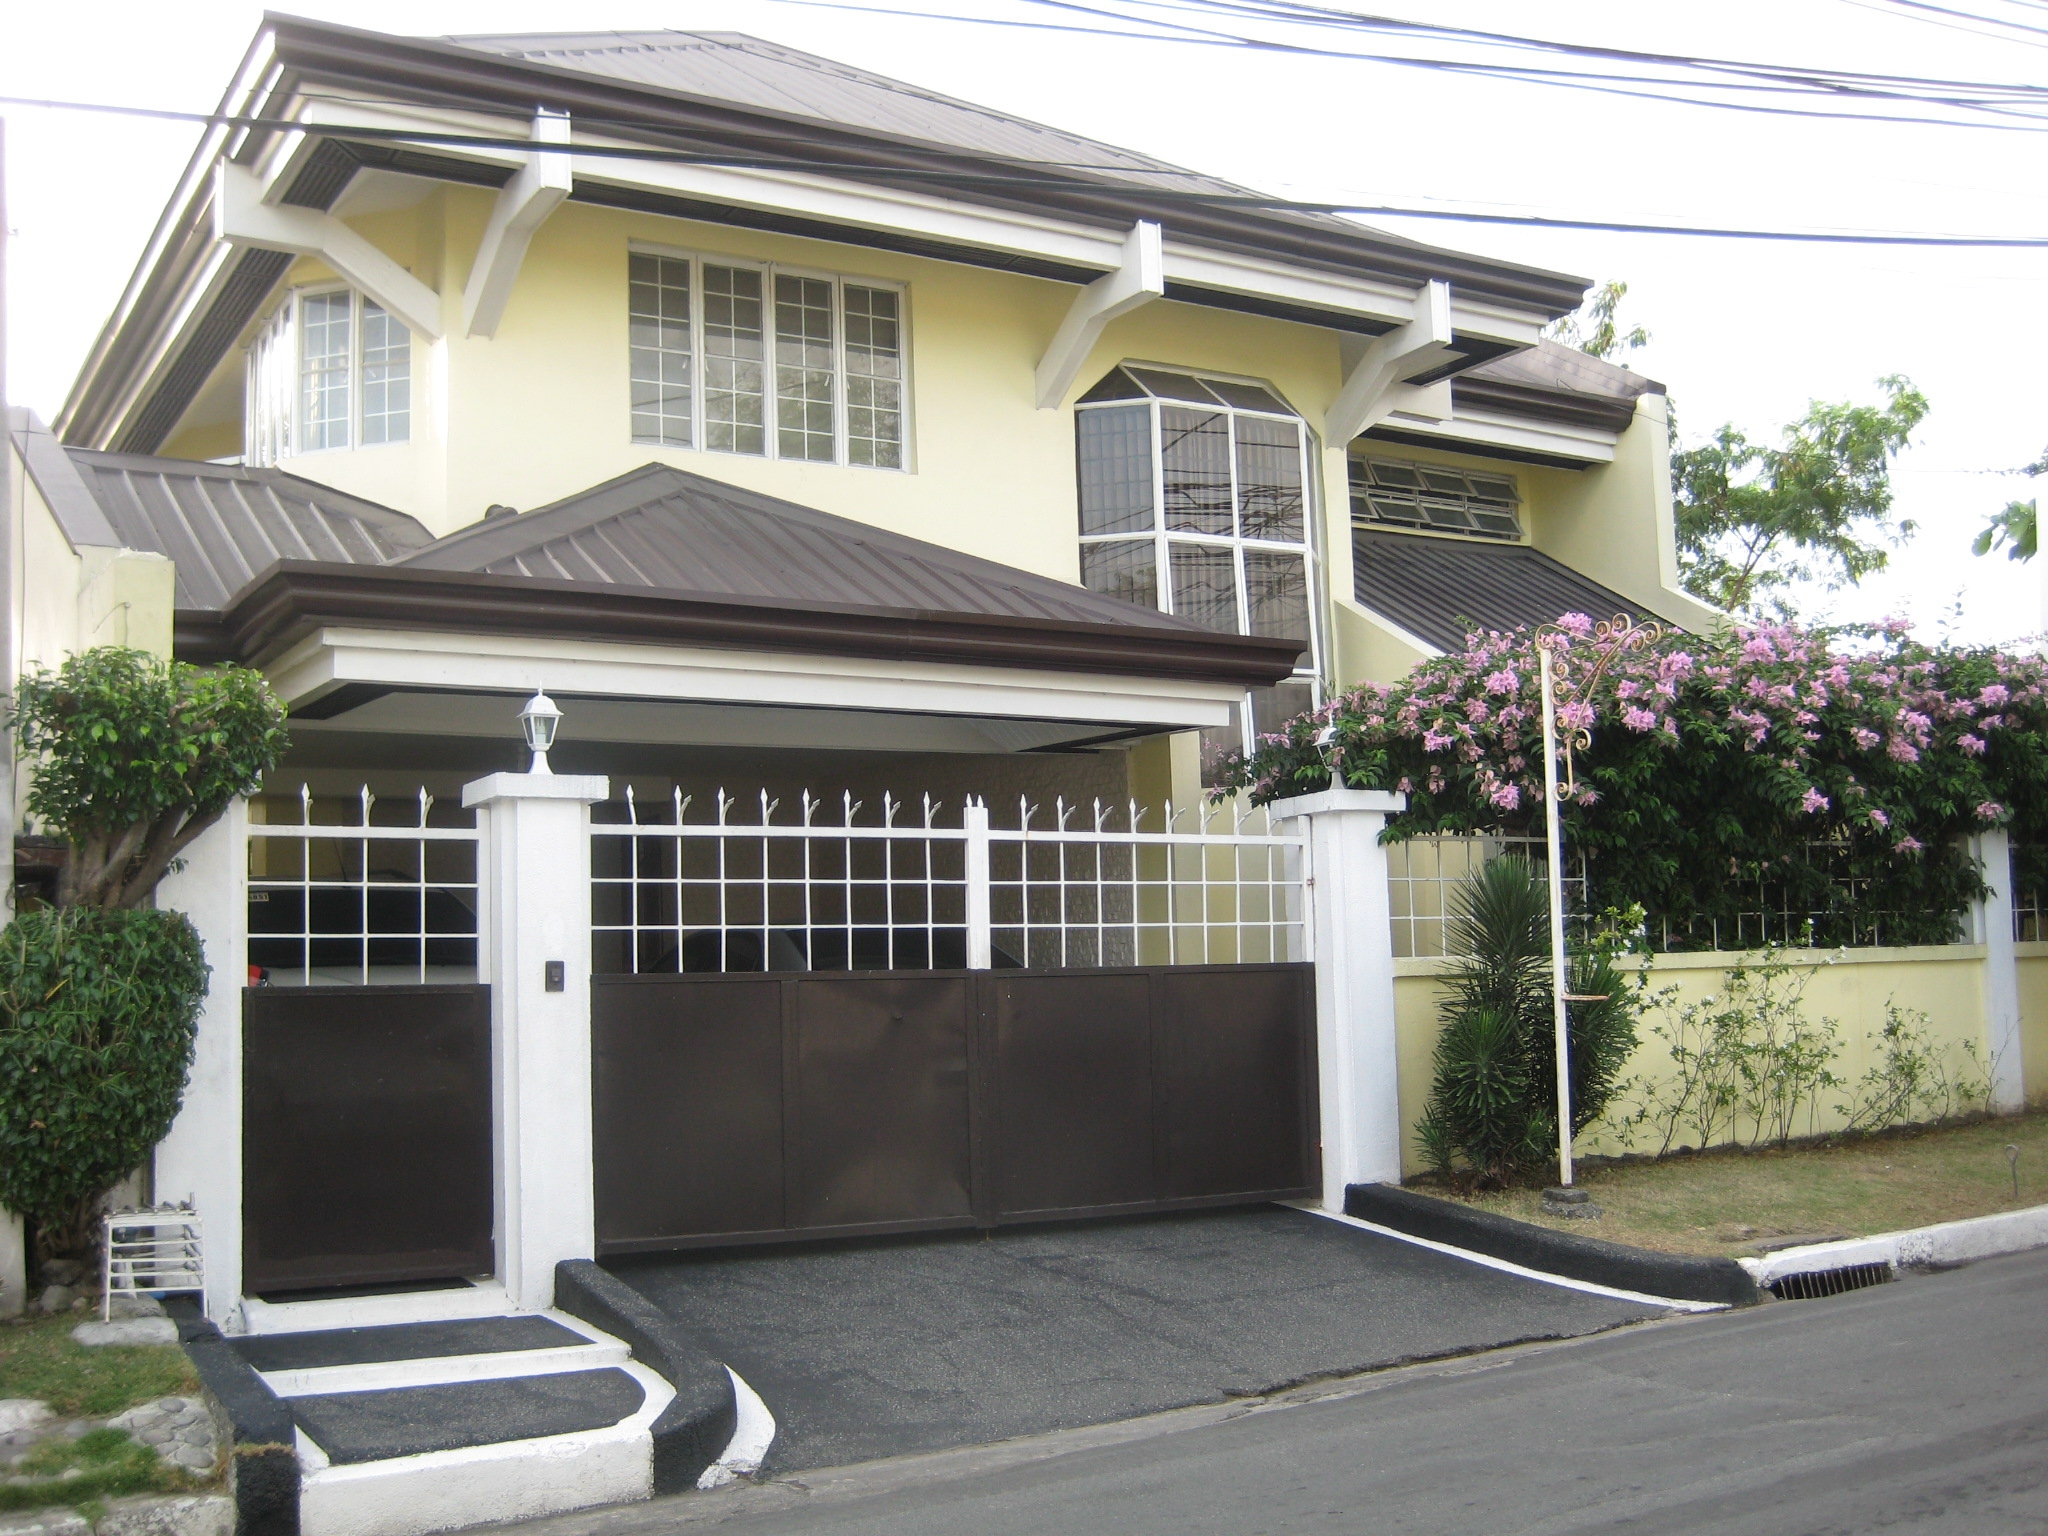 House U0026 Lot For Sale In Better Living, Paranaque City Better Living  Subdivision, Parañaque City   Single Family Home / House U0026 Lot For Sale In Better  Living ...